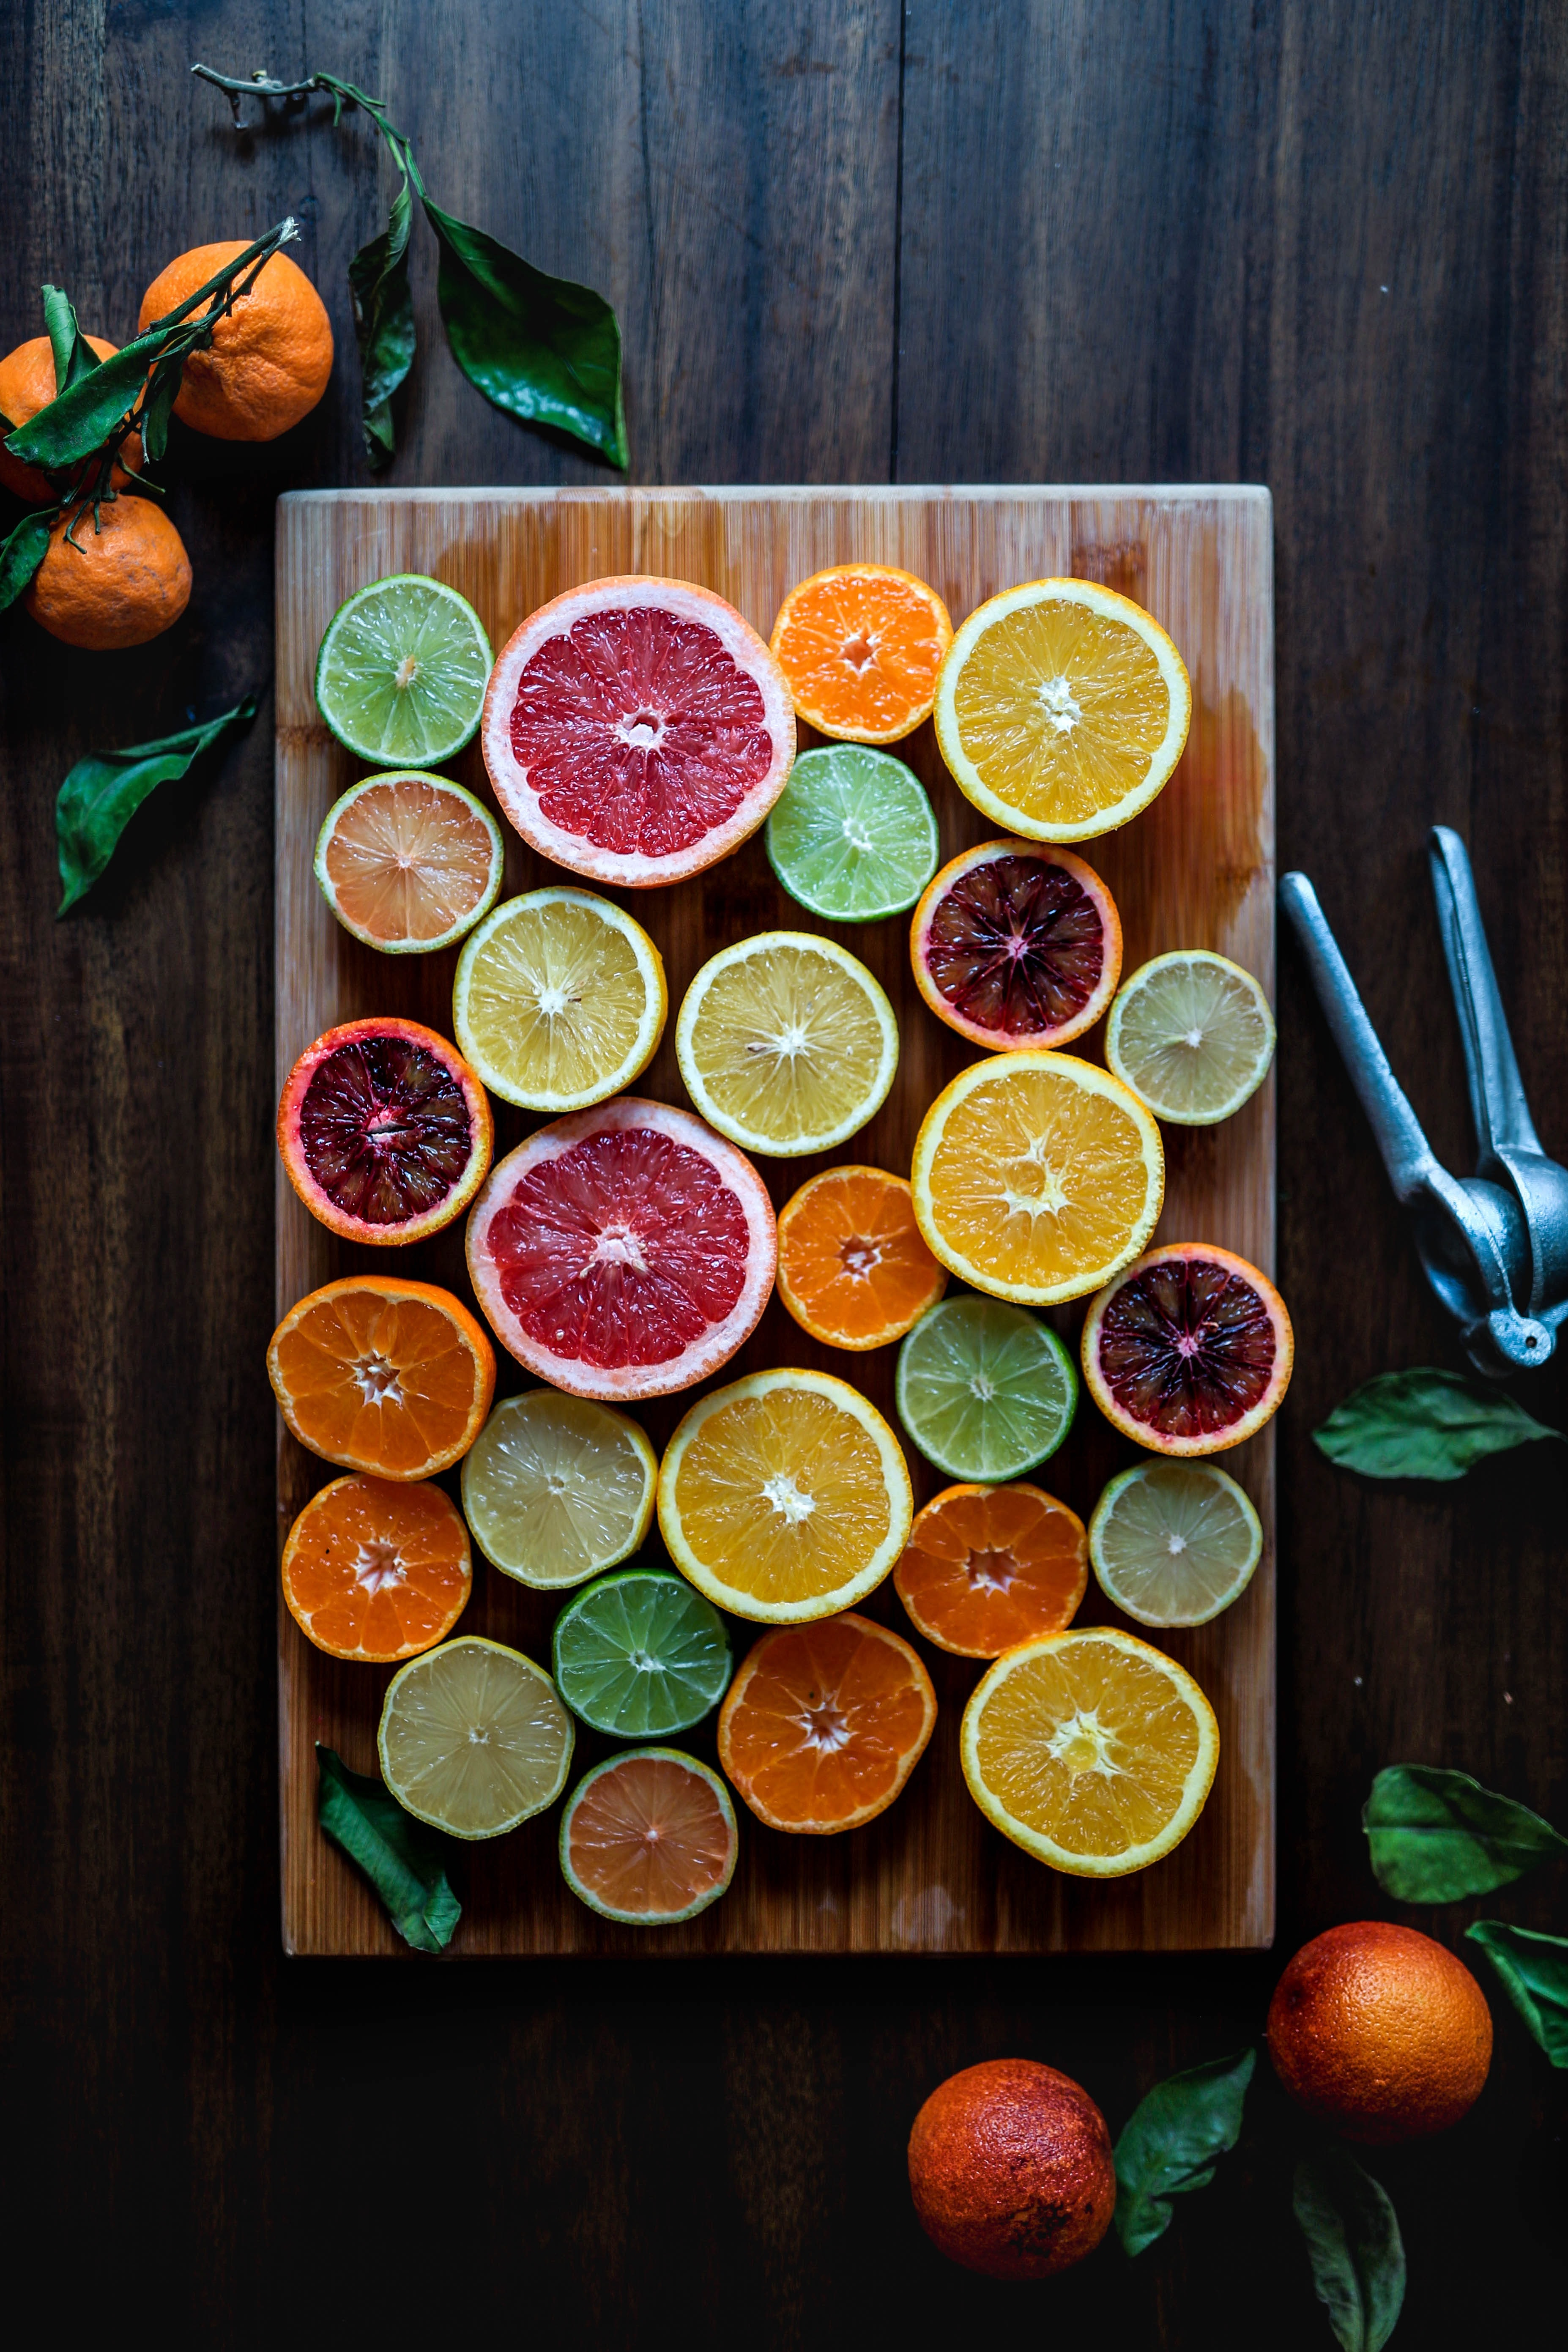 100 Fruit Pictures Download Free Images On Unsplash